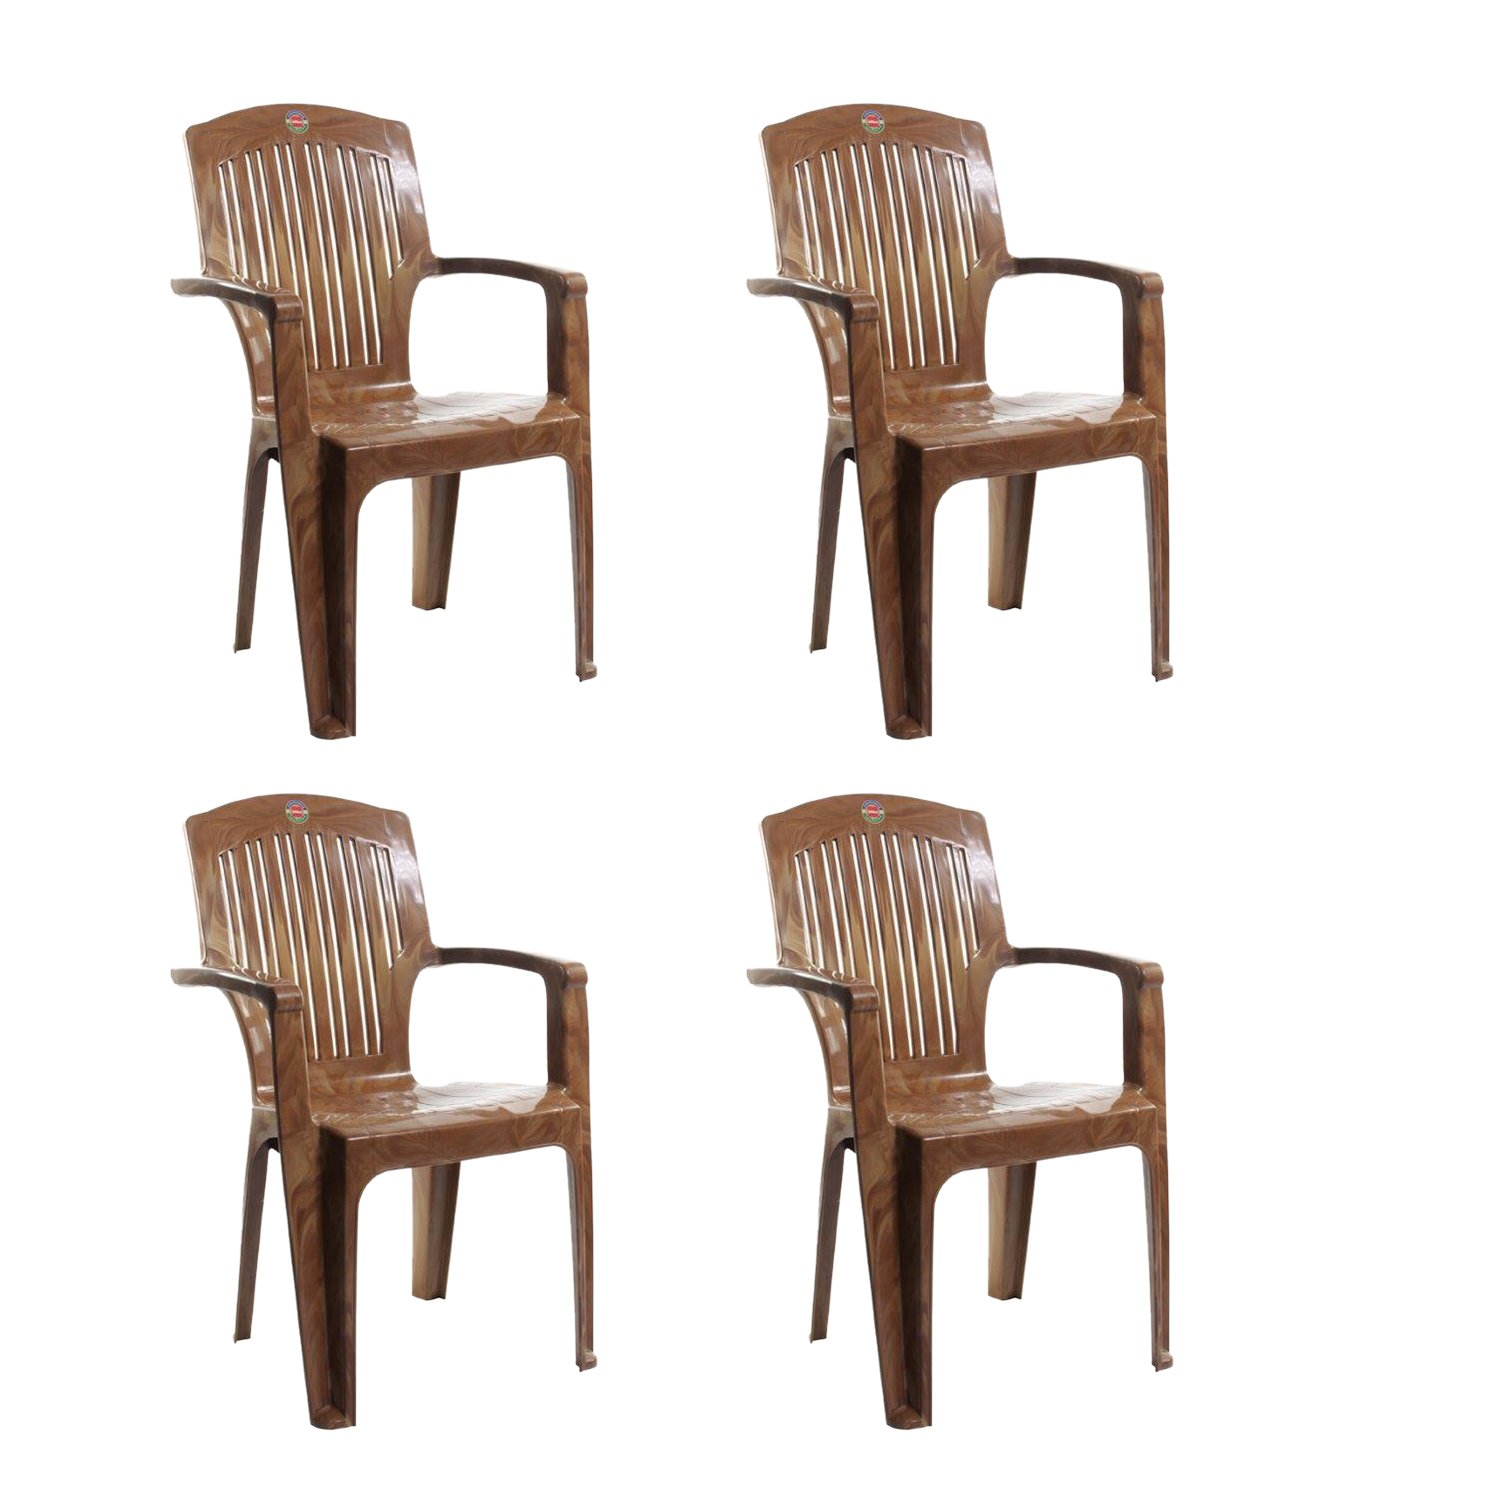 Cello rade Set of 4 Chairs Sandalwood Brown Amazon Home